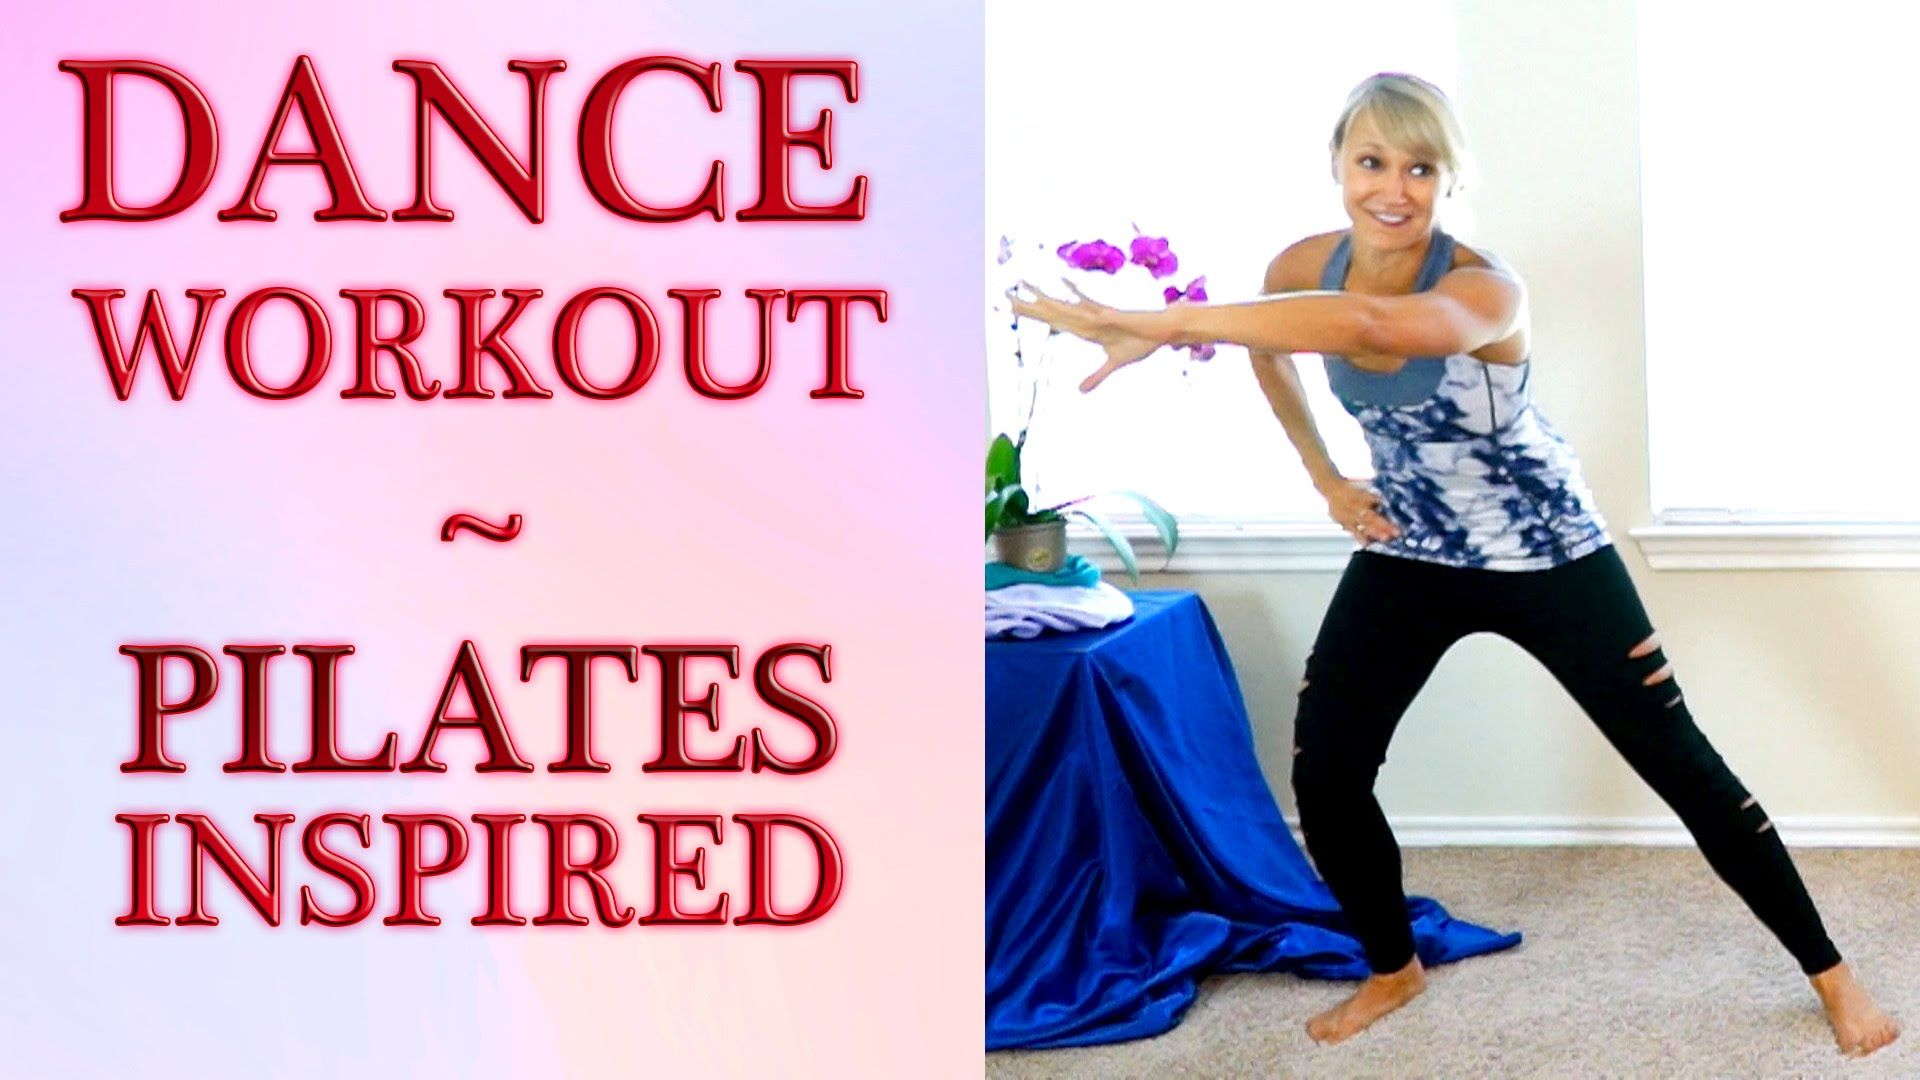 Fun Beginners Dance Workout For Weight Loss - At Home Cardio Exercise Dance Routine This is dance workouts videos to do at home to lose belly fat and weight ... #cardiopilates